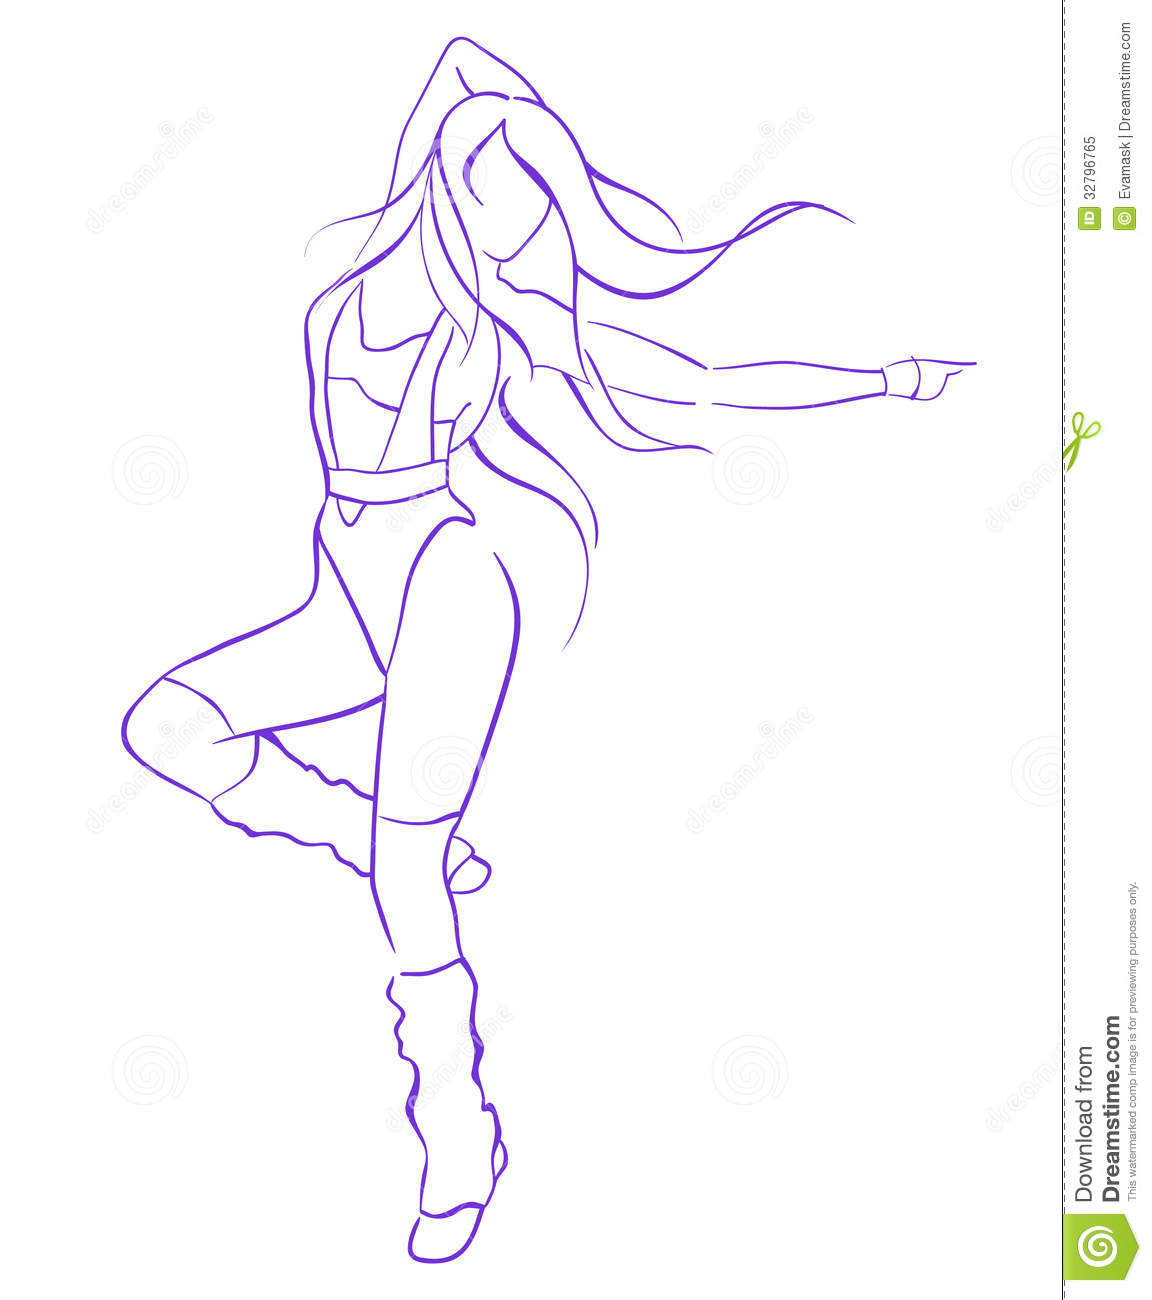 Line Drawing Girl : Line drawing girl jumping royalty free stock photo image